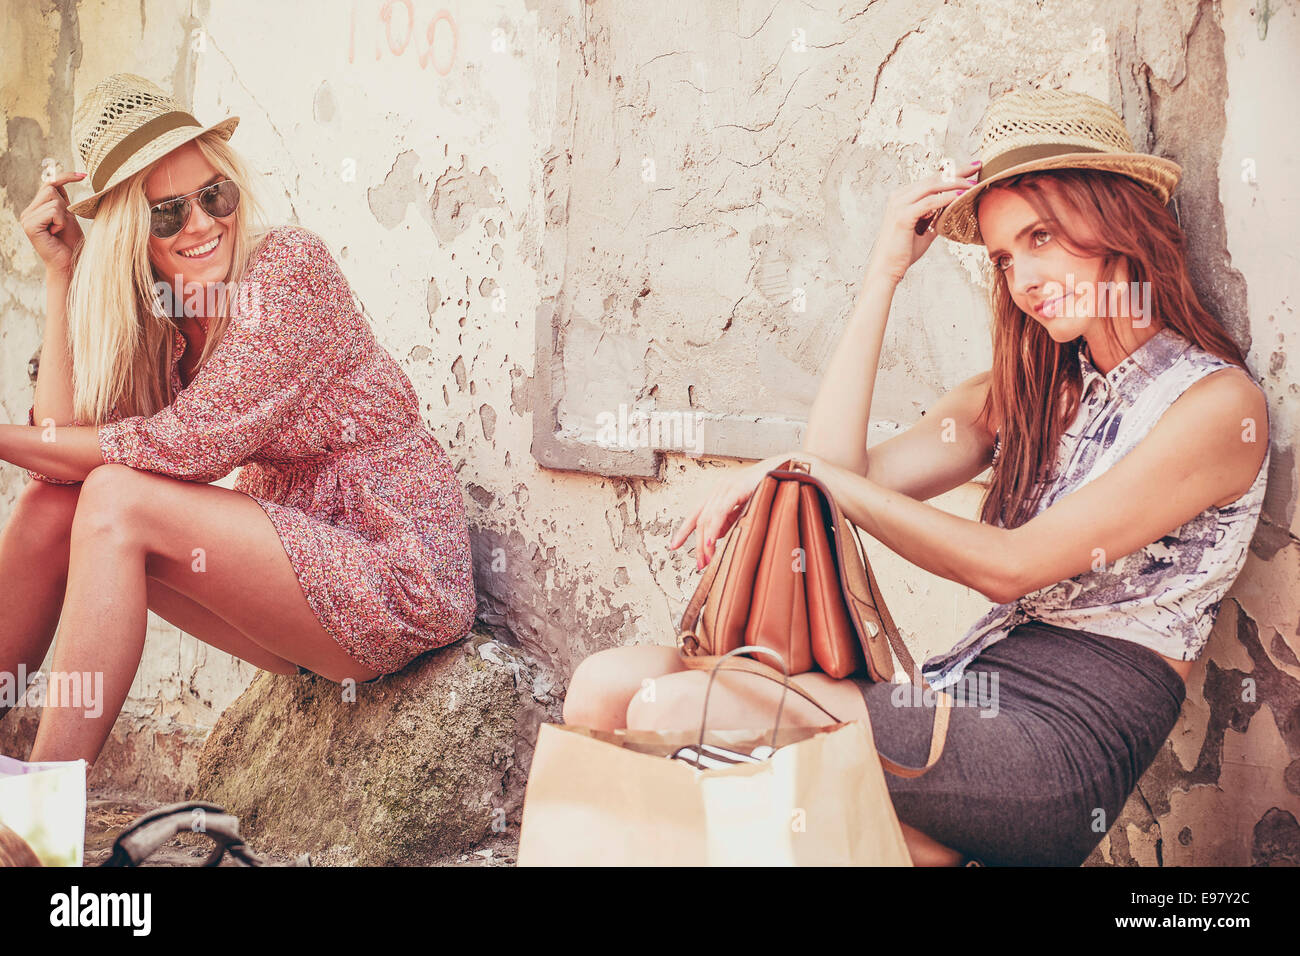 Two women with luggage waiting outdoors looking bored - Stock Image